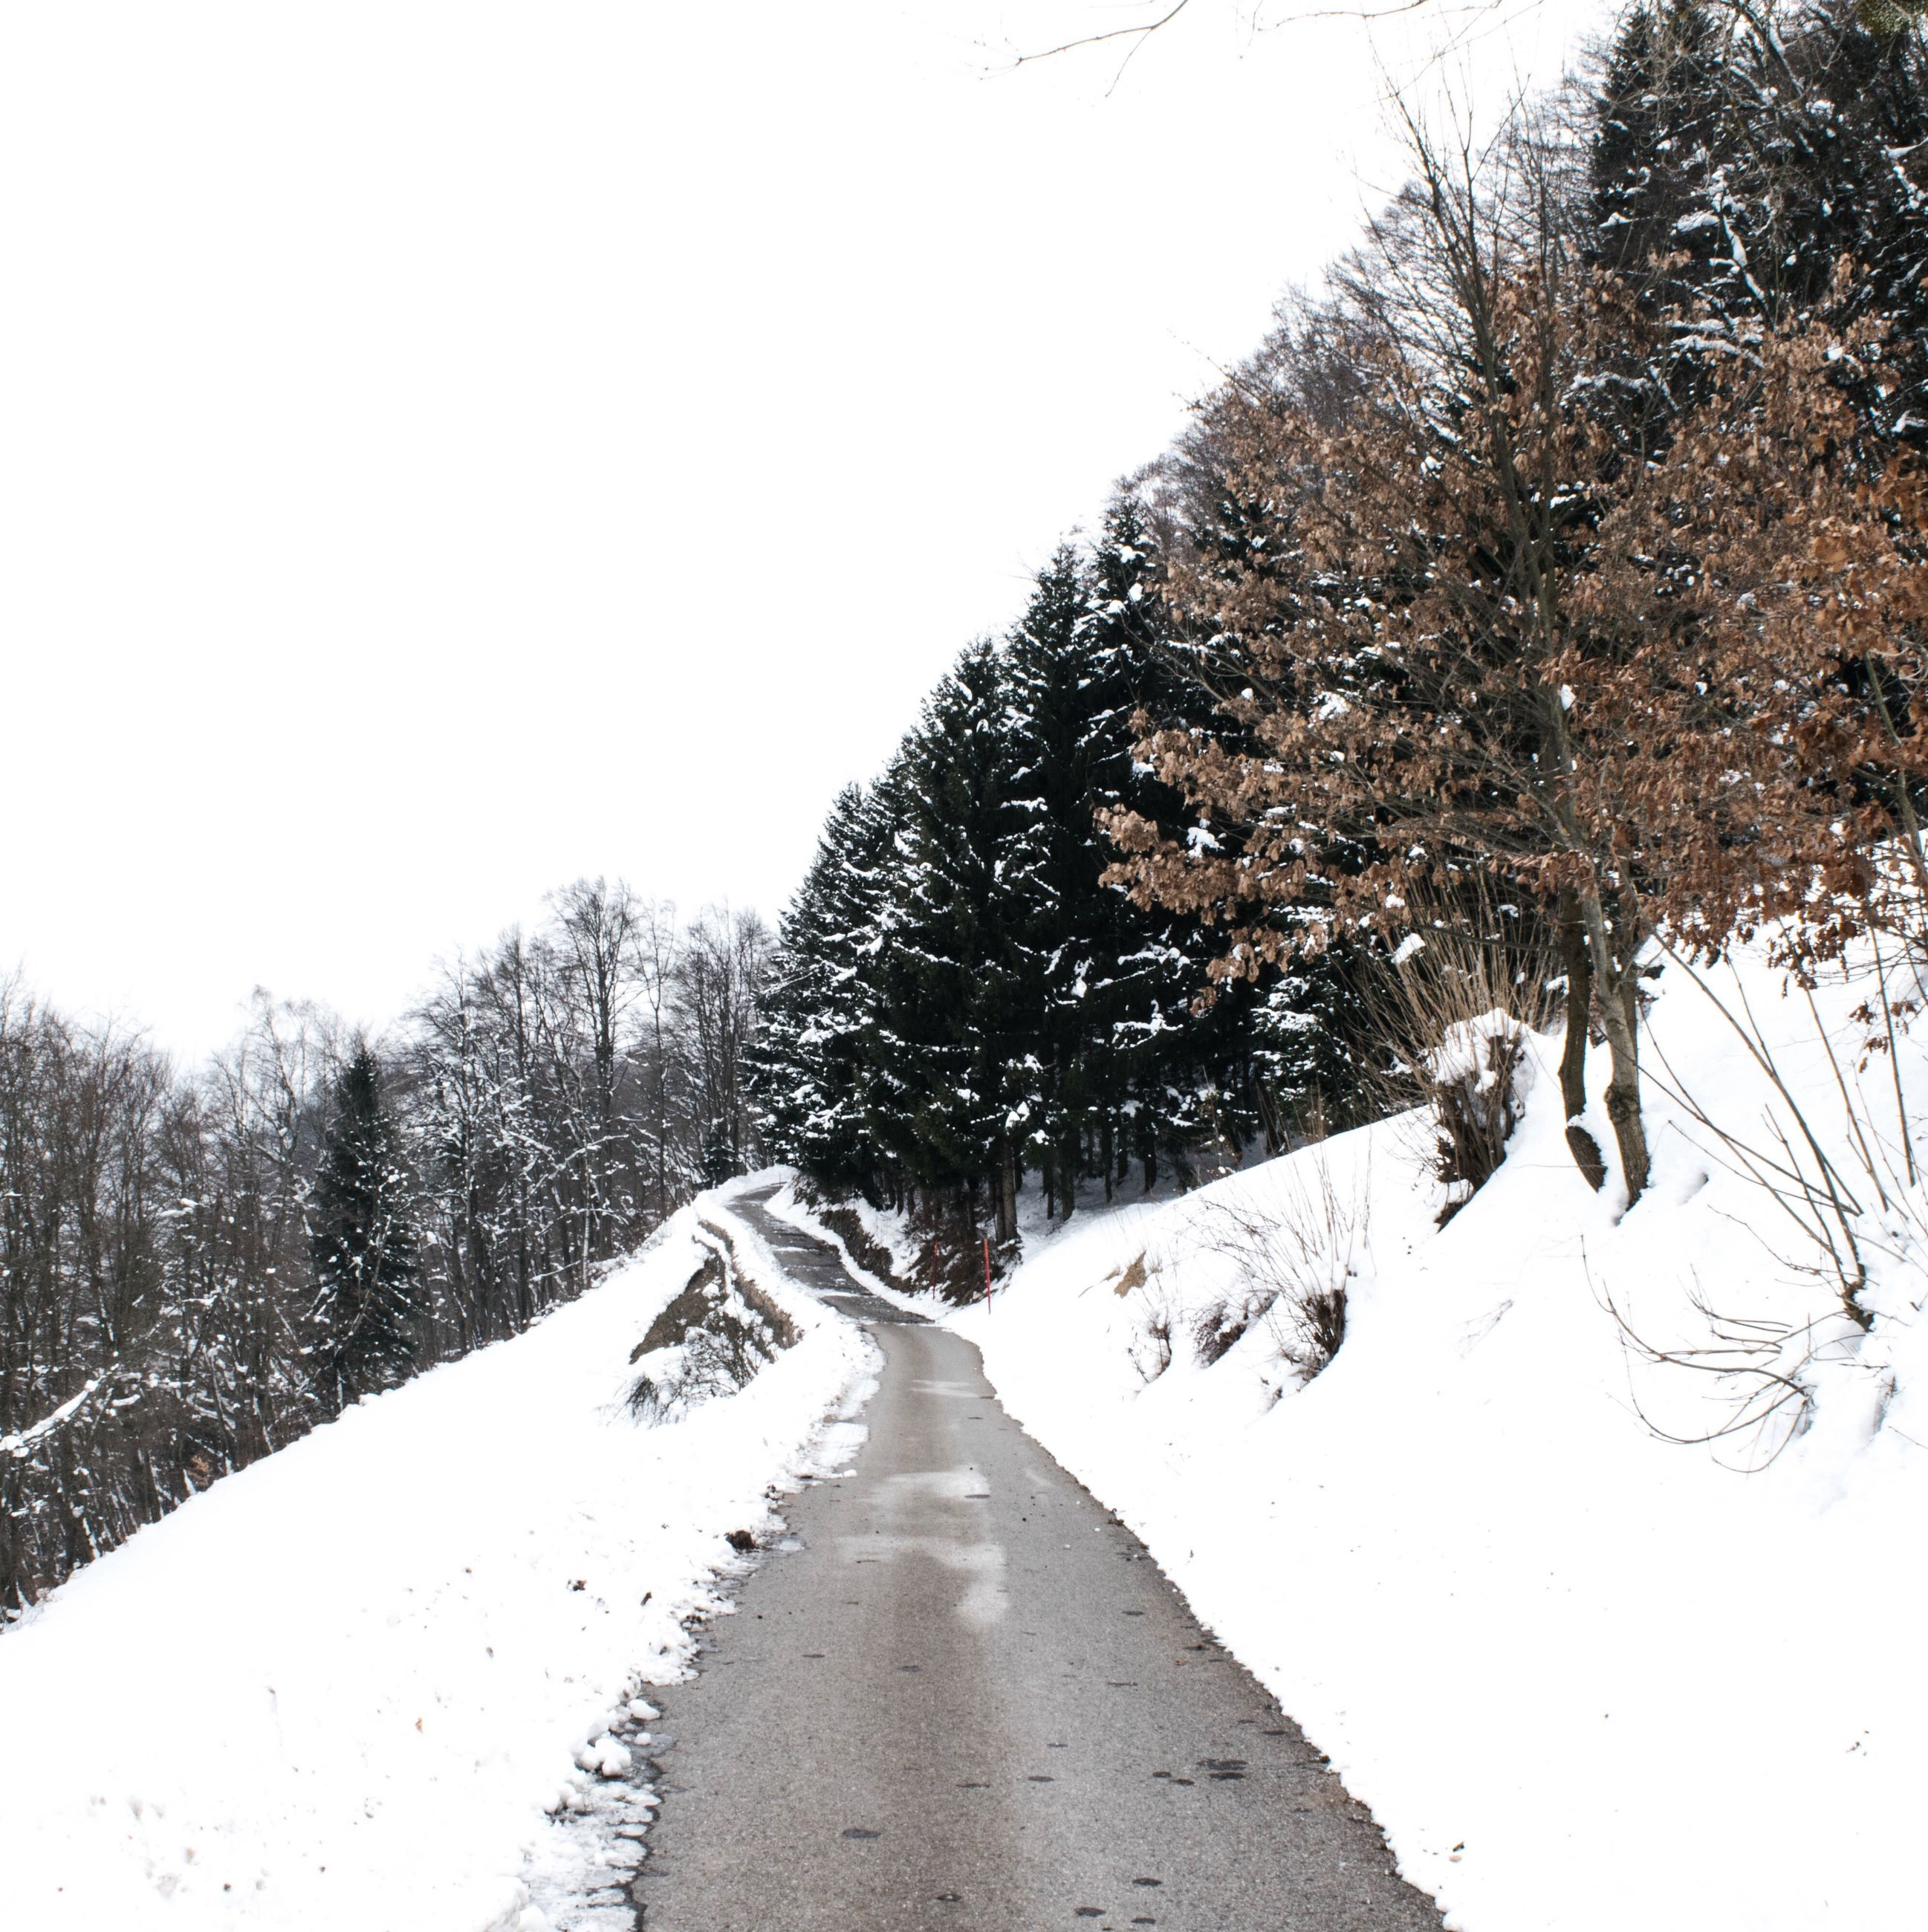 snow, winter, the way forward, cold temperature, season, diminishing perspective, weather, clear sky, vanishing point, tree, covering, nature, road, tranquility, transportation, tranquil scene, bare tree, covered, beauty in nature, day